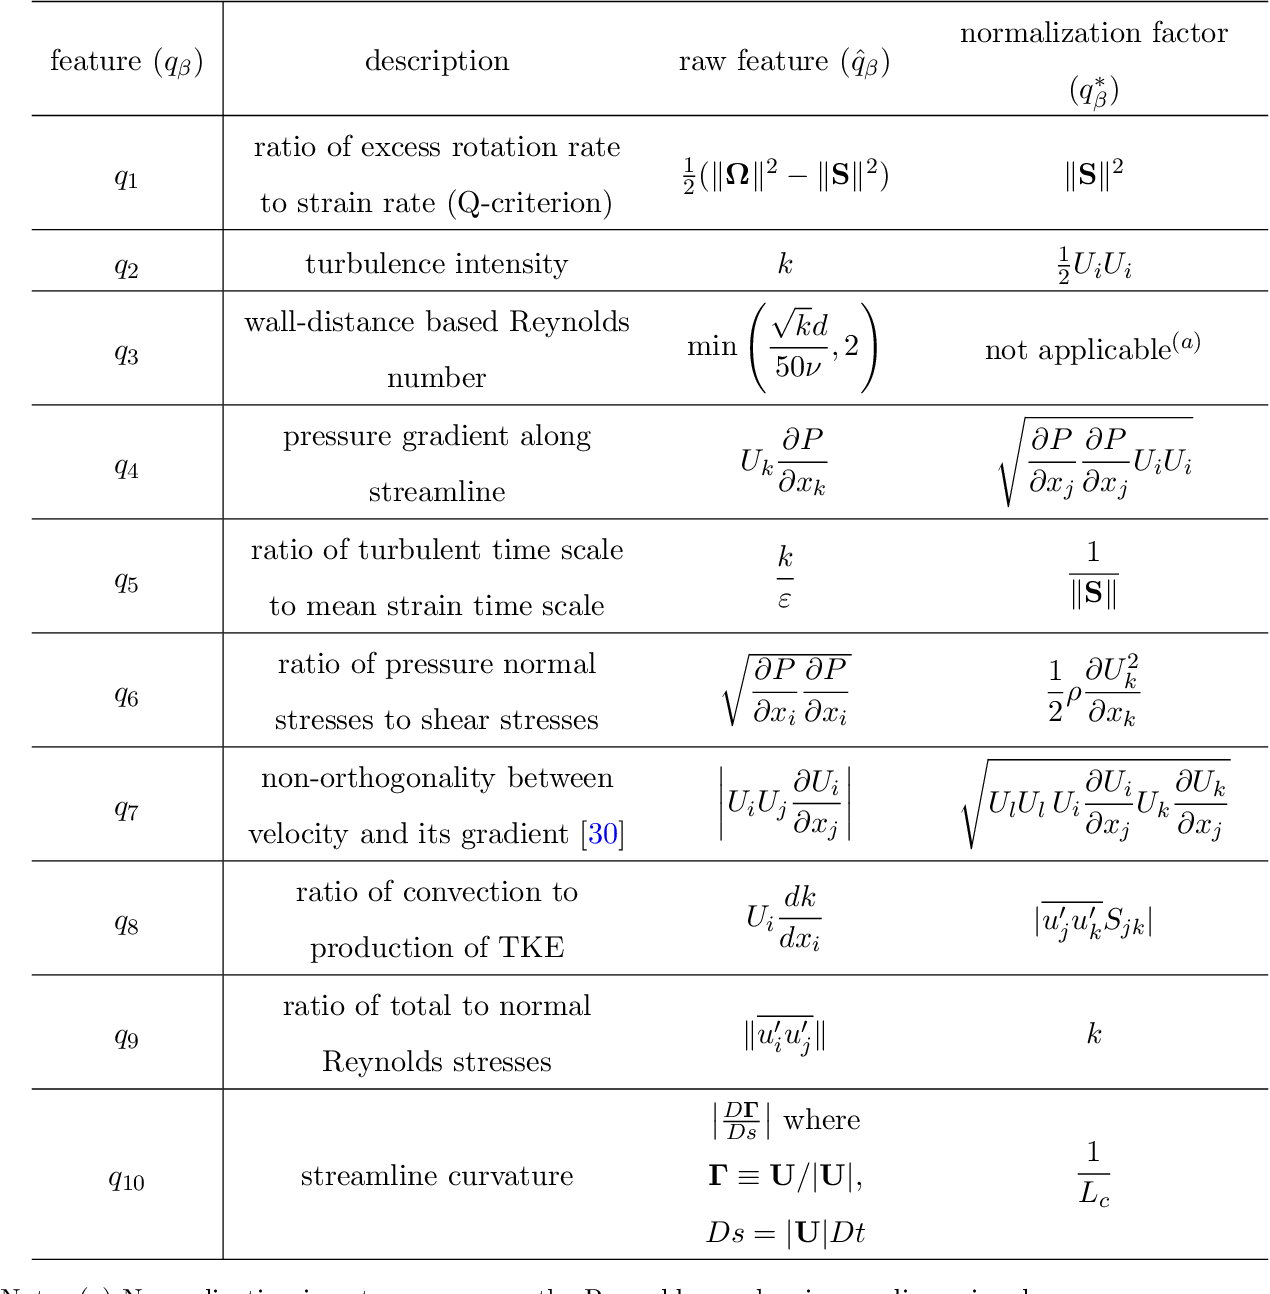 Table 1: Non-dimensional flow features used as input in the regression. The normalized feature qβ is obtained by normalizing the corresponding raw features value q̂β with normalization factor q ∗ β according to qβ = q̂β/(|q̂β |+ |q∗β |) except for β = 3. Repeated indices imply summation for indices i, j, k, and l but not for β. Notations are as follows: Ui is mean velocity, k is turbulent kinetic energy (TKE), u ′ i is fluctuation velocity, ρ is fluid density, ε is the turbulence dissipation rate, S is the strain rate tensor, Ω is the rotation rate tensor, ν is fluid viscosity, d is distance to wall, Γ is unit tangential velocity vector, D denotes material derivative, and Lc is the characteristic length scale of the mean flow. ‖ · ‖ and | · | indicate matrix and vector norms, respectively.